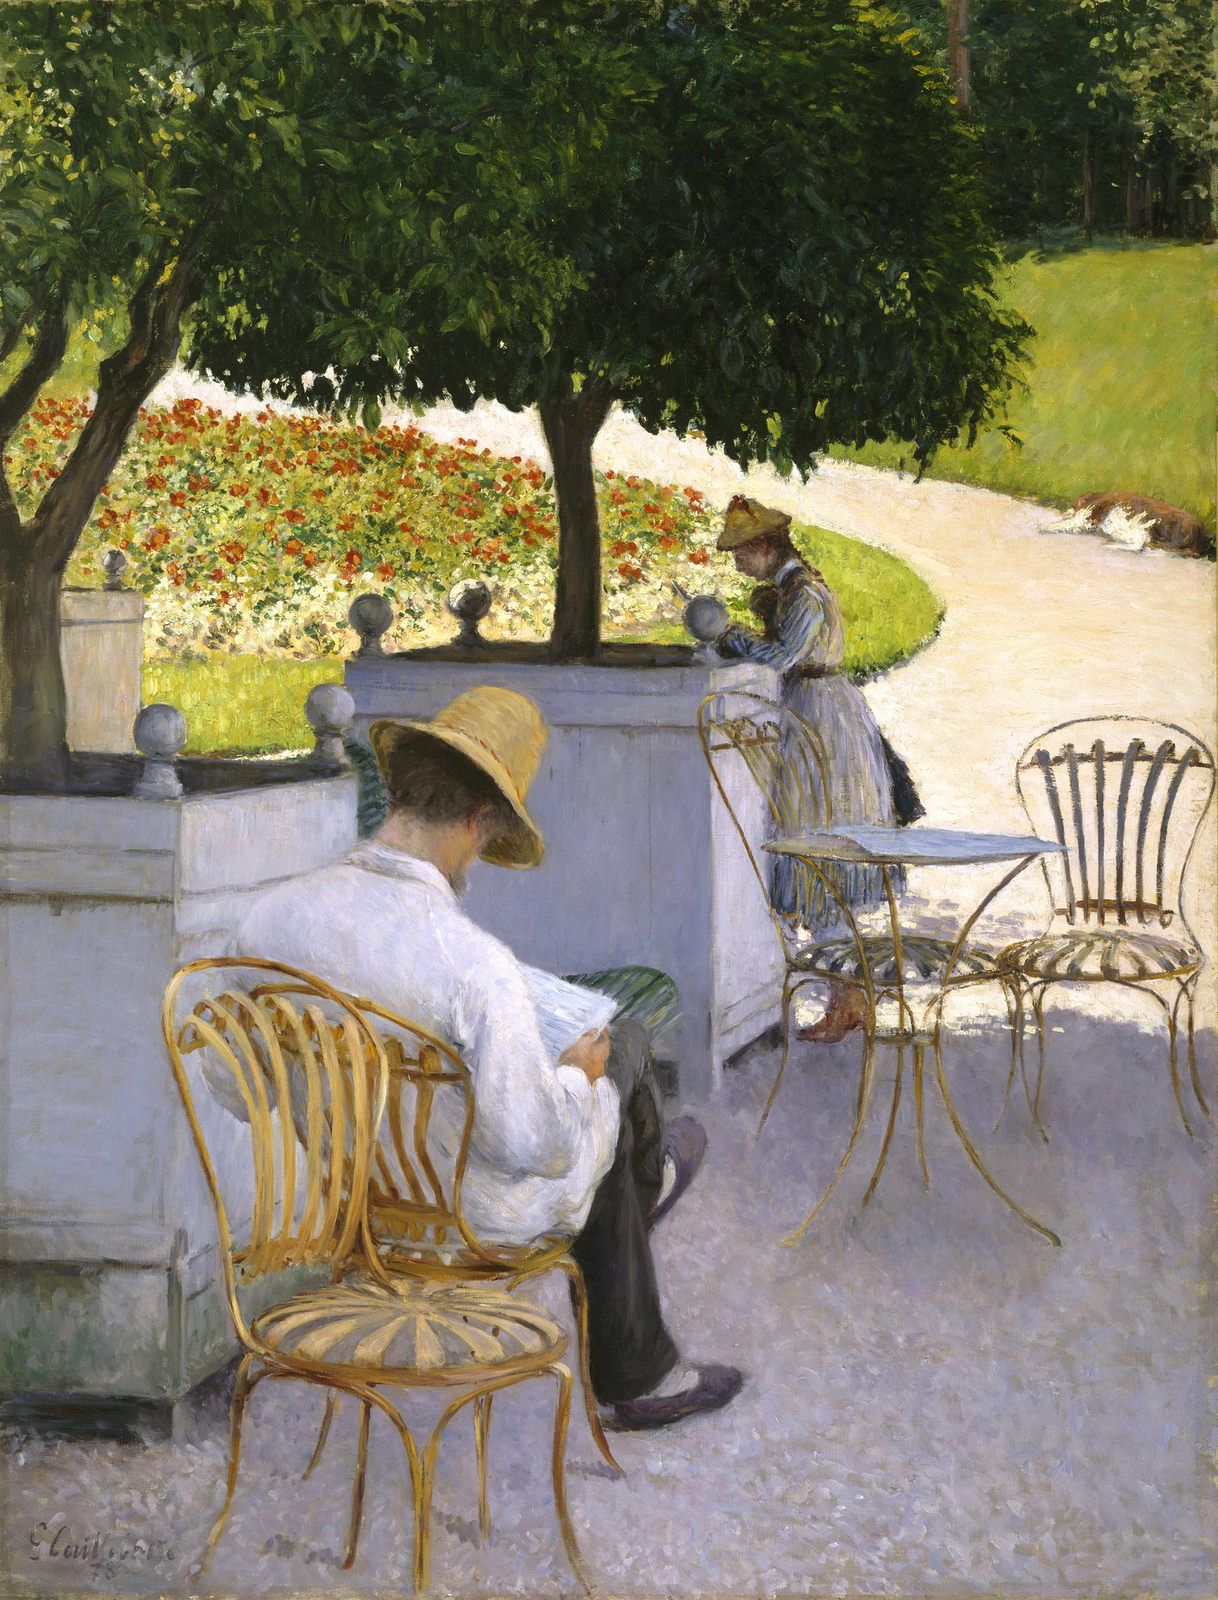 https://flic.kr/p/G5faFq | Gustave Caillebotte - The Orange Trees [1878] | Caillebotte painted this canvas en plein air at the family's country estate in Yerres in 1878. The image depicts a daytime scene. Caillebotte's brother Martial is reading while sitting in the shade of the orange trees with his back towards the viewer. The lightweight painted sprung-steel garden chairs in the foreground appear in other works painted at Yerres, and can be seen in a contemporaneous photograph of the…